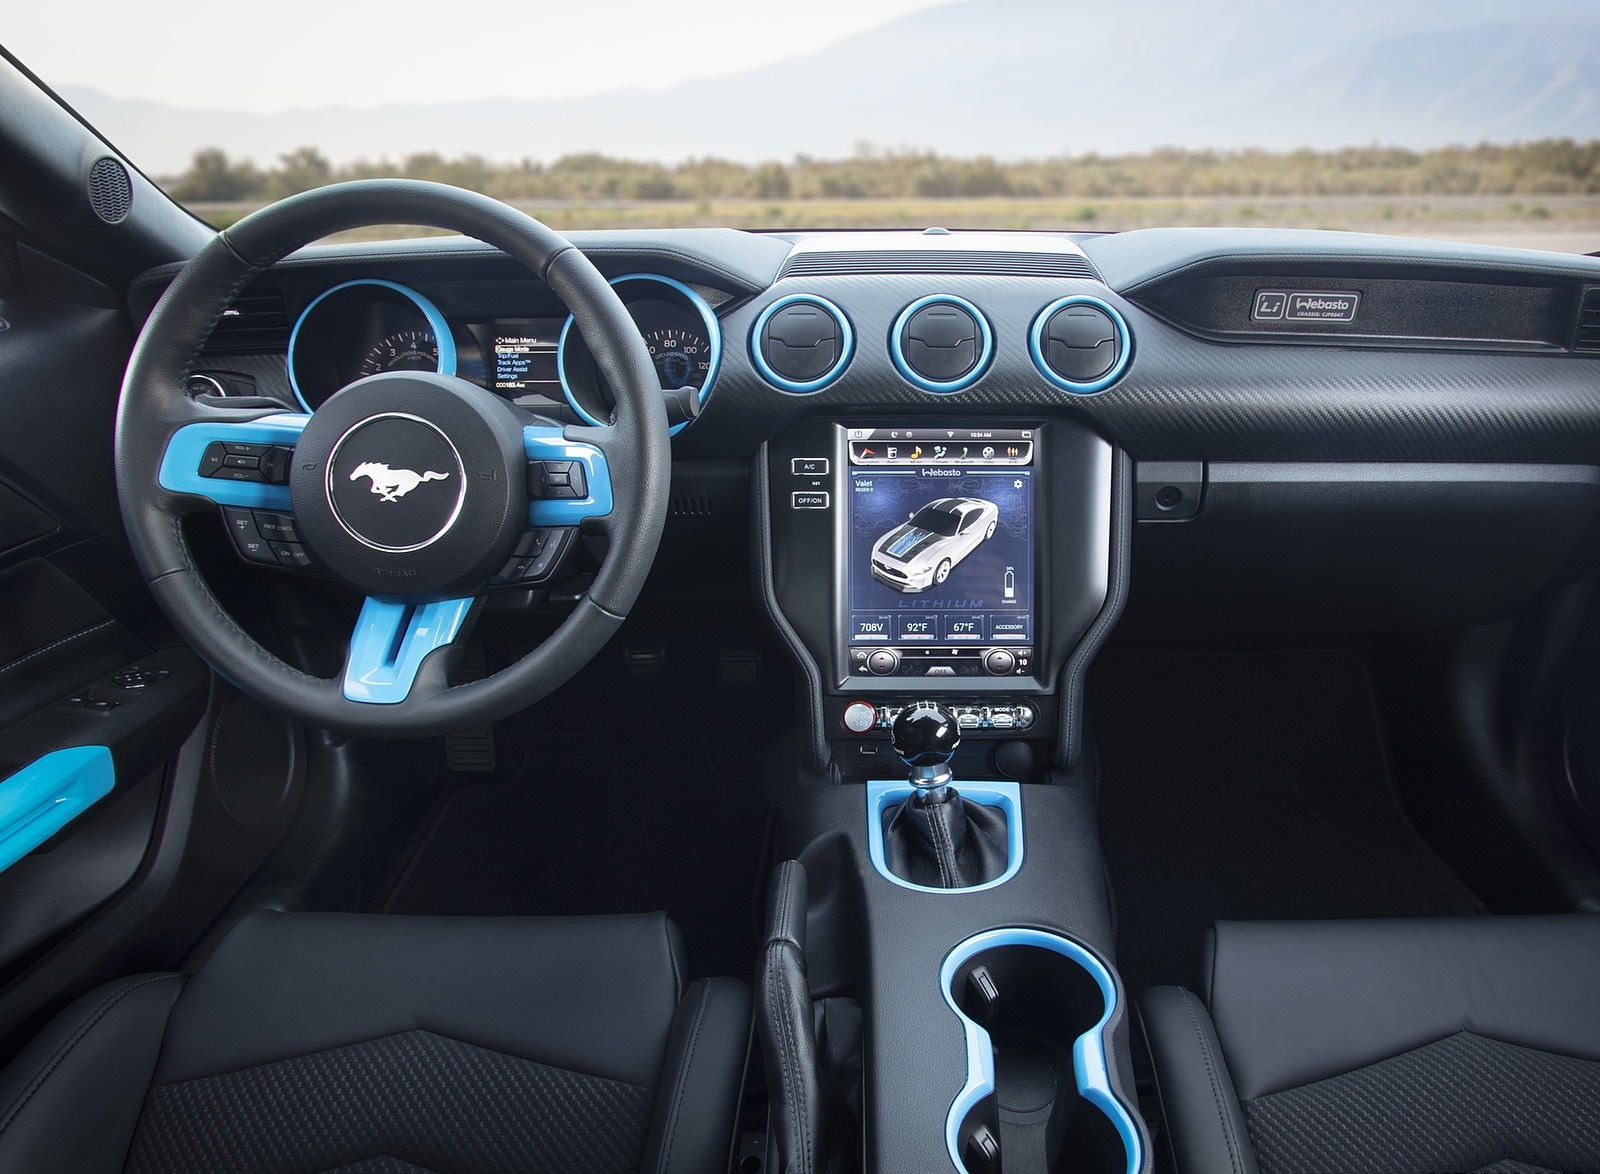 2019 Ford Mustang Lithium Concept Interior Cockpit Wallpapers (6)